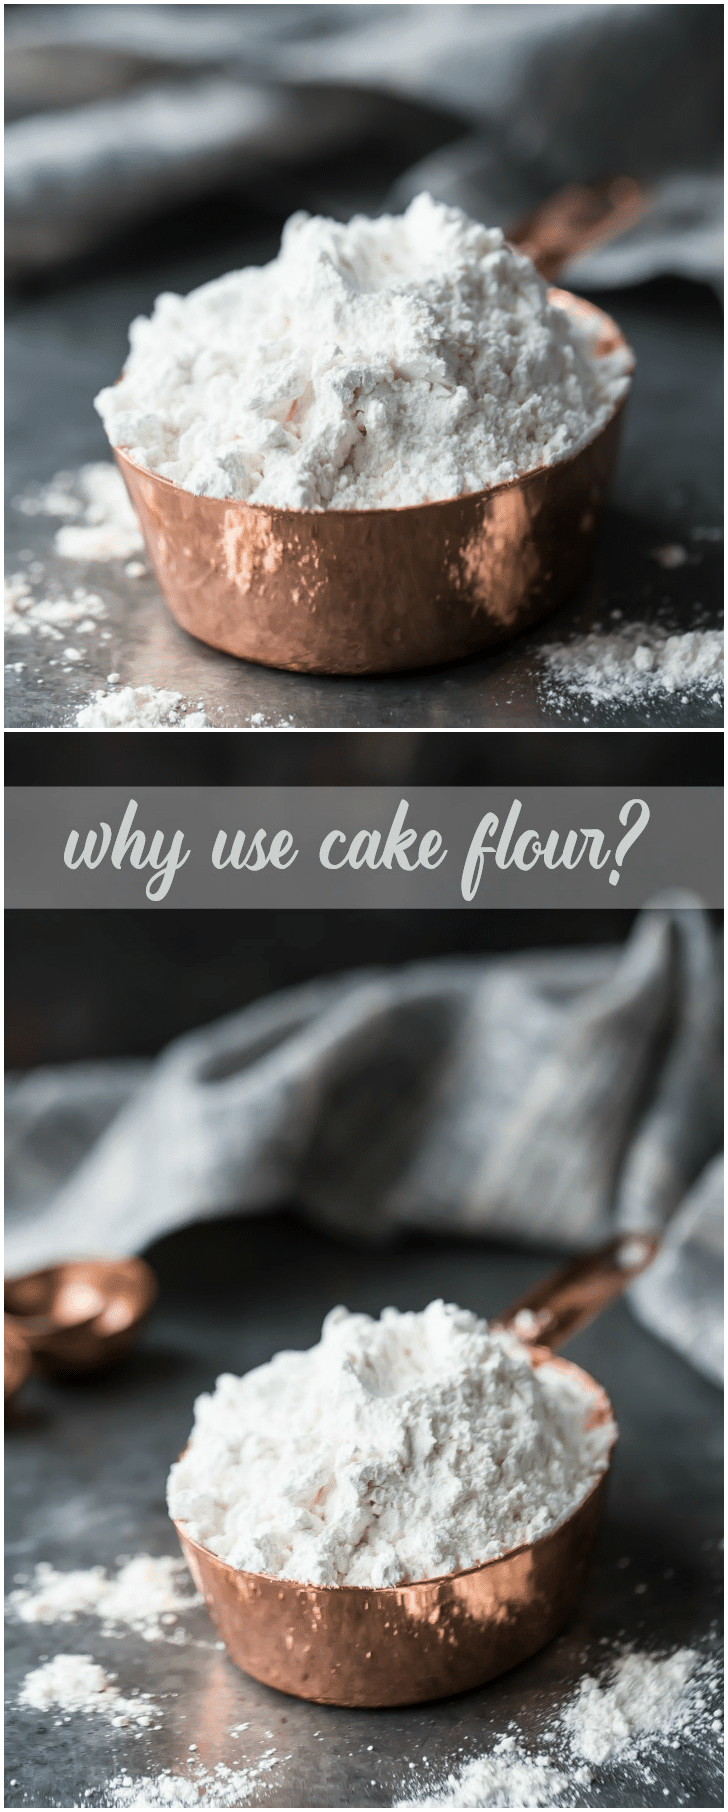 If you've ever wondered about baking with cake flour, all the answers are here!  What it is, when to use it, where to get it, and how to use it!  #cakeflour #recipe #howtomake #substitute #cupcakes #using #desserts #whatis #pancakes #homemade #DIY #muffins #baking #donuts #scones #biscuits #brands #whattodo #glutenfree #homemade